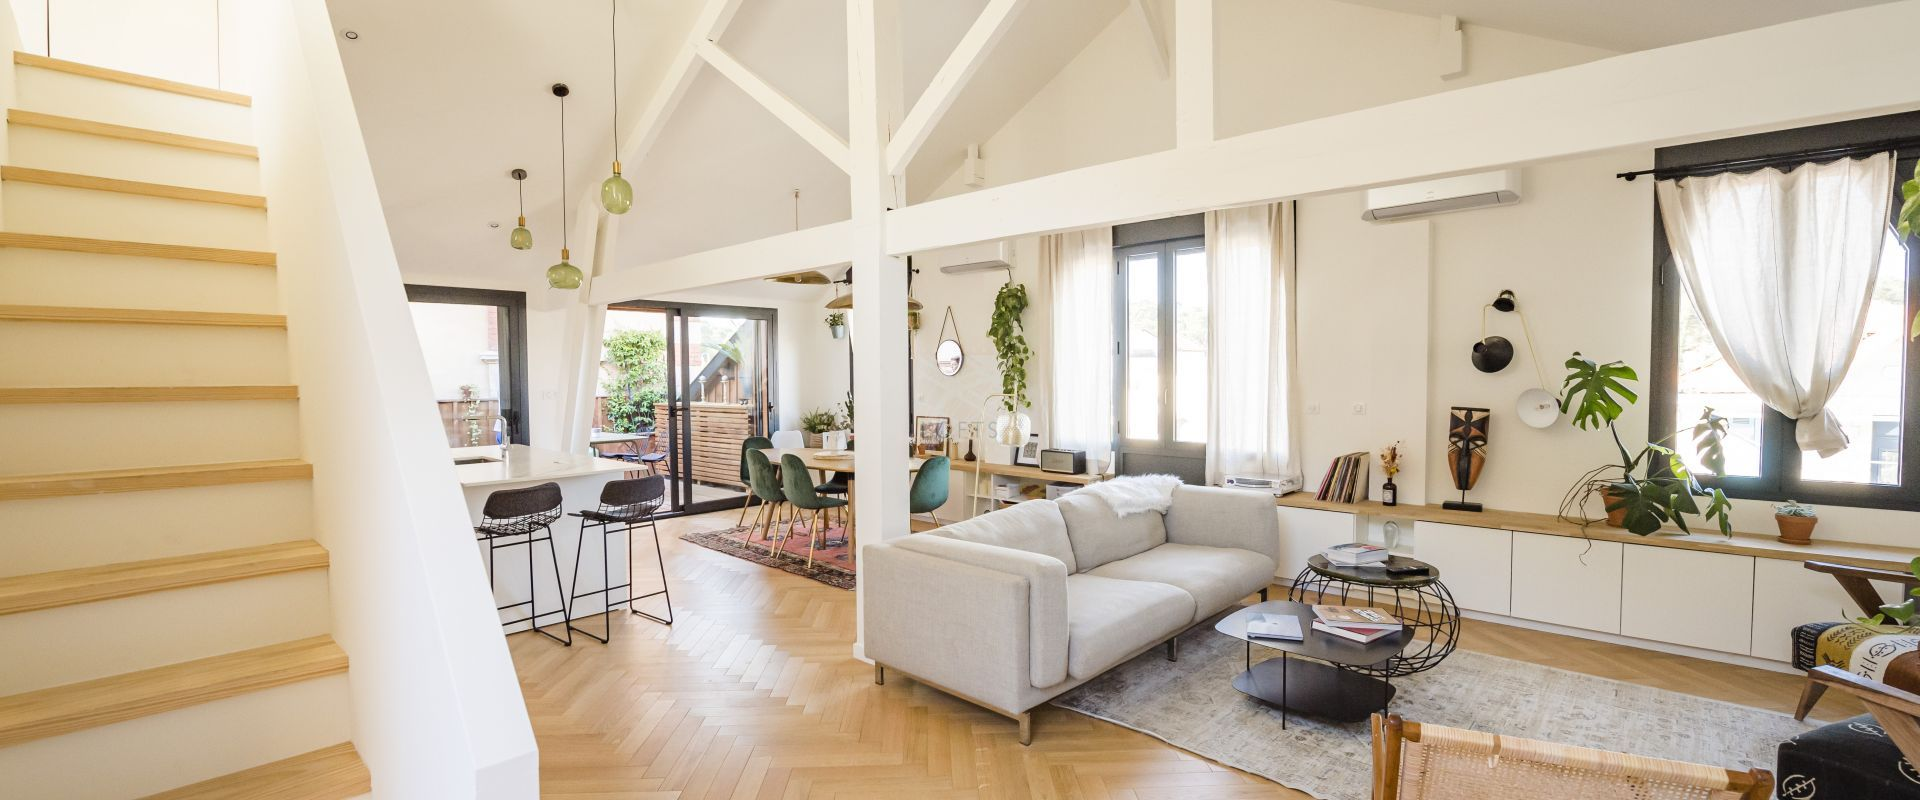 Renovated townhouse in Arcachon